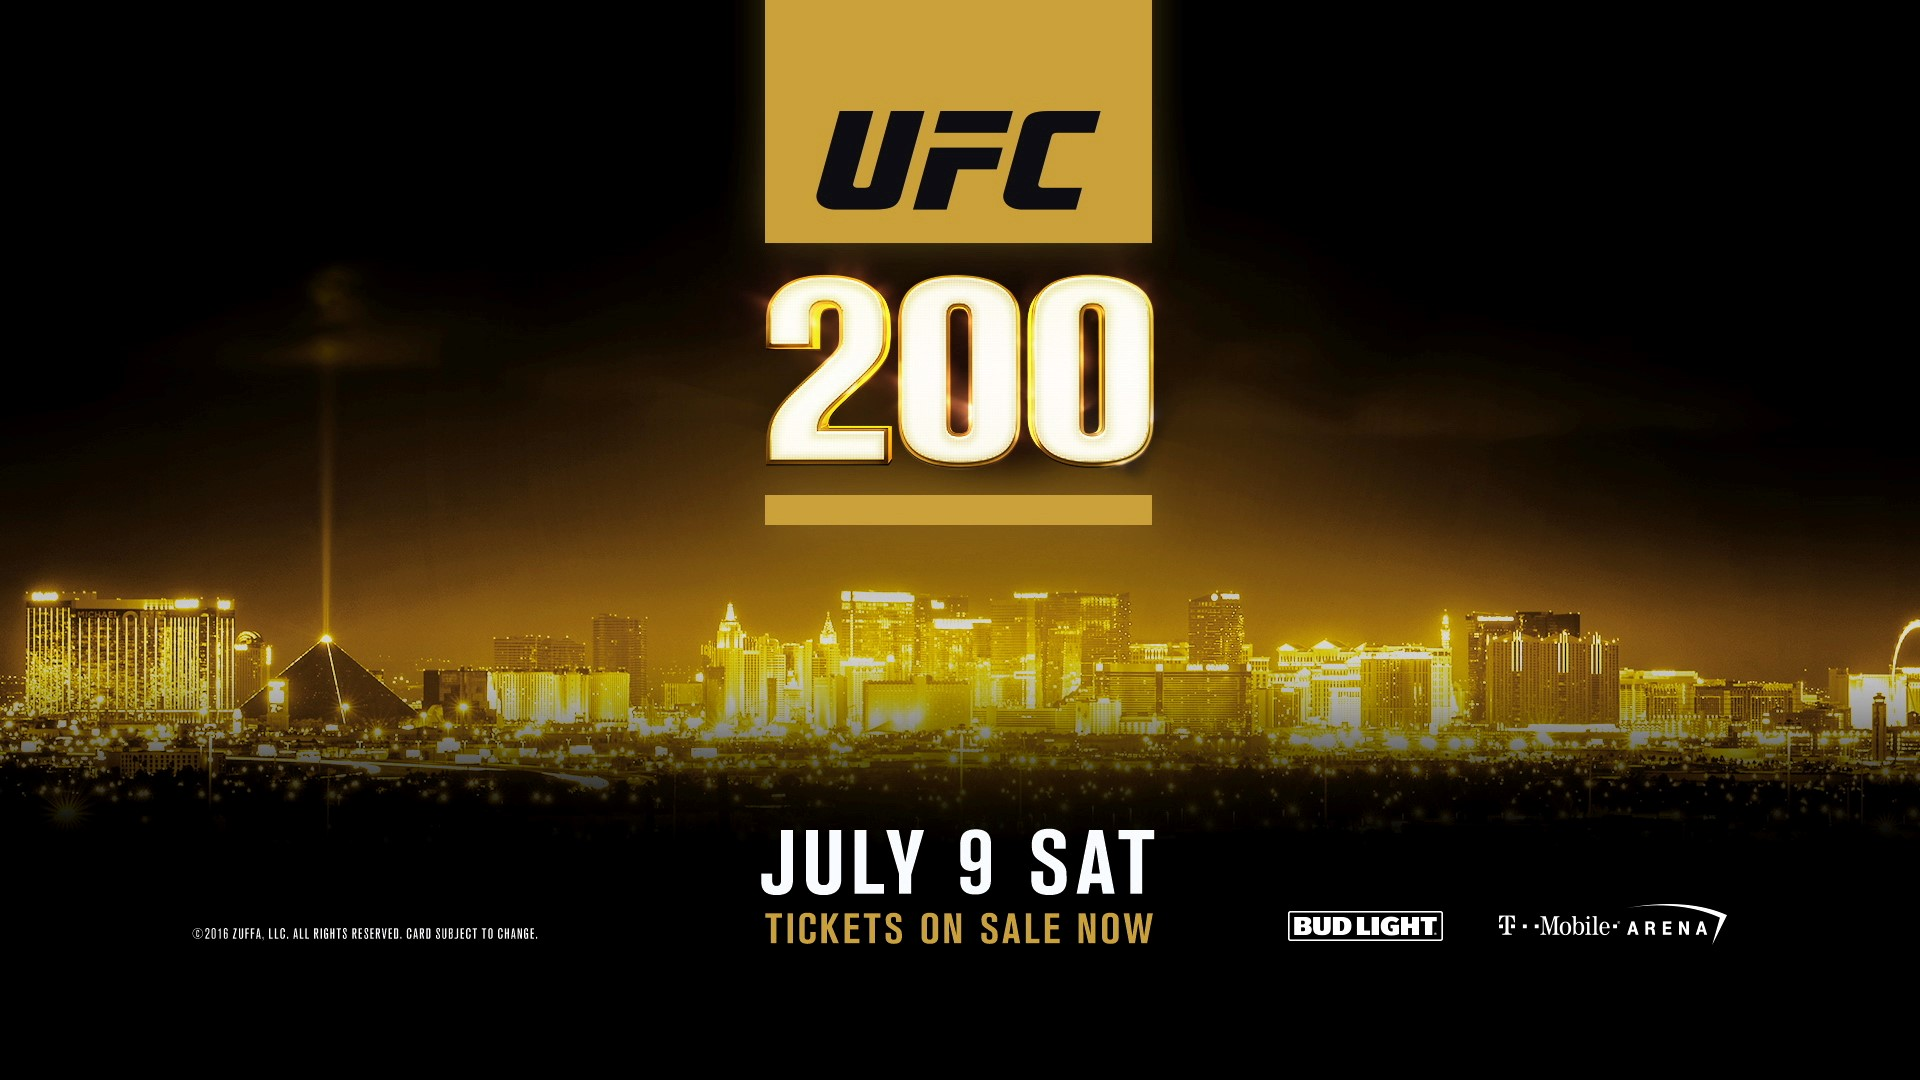 Ufc 200 wallpaper collection 9 wallpapers ufc 200 july 9 2016 youtube voltagebd Gallery